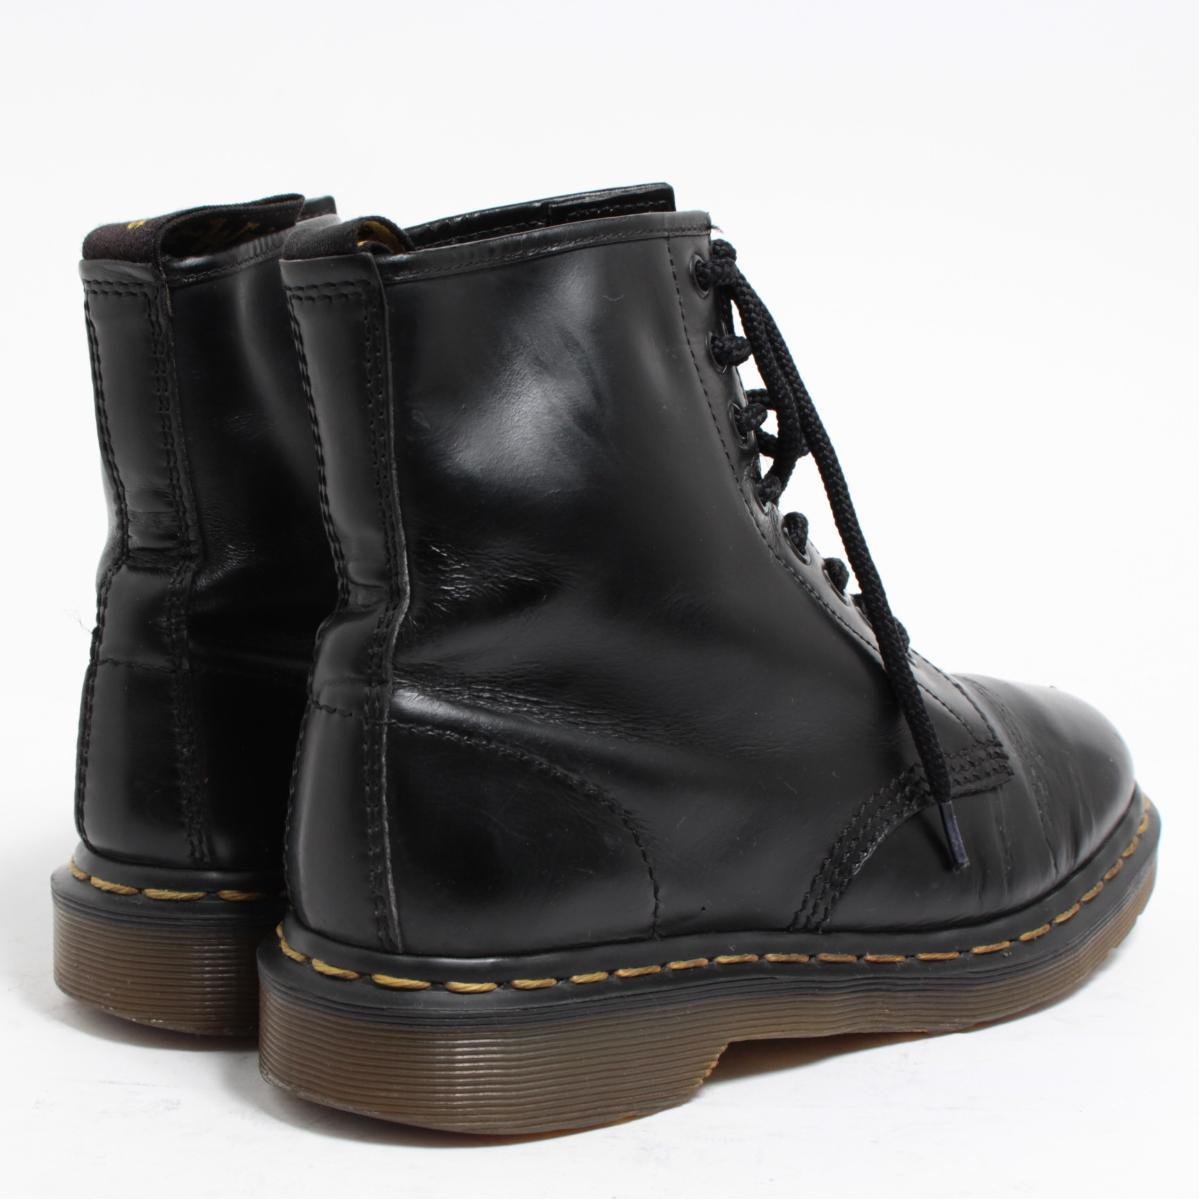 UK6 Lady's 24.5cm /bol8059 made in the doctor Martin Dr.Martens 8 hall boots U.K.